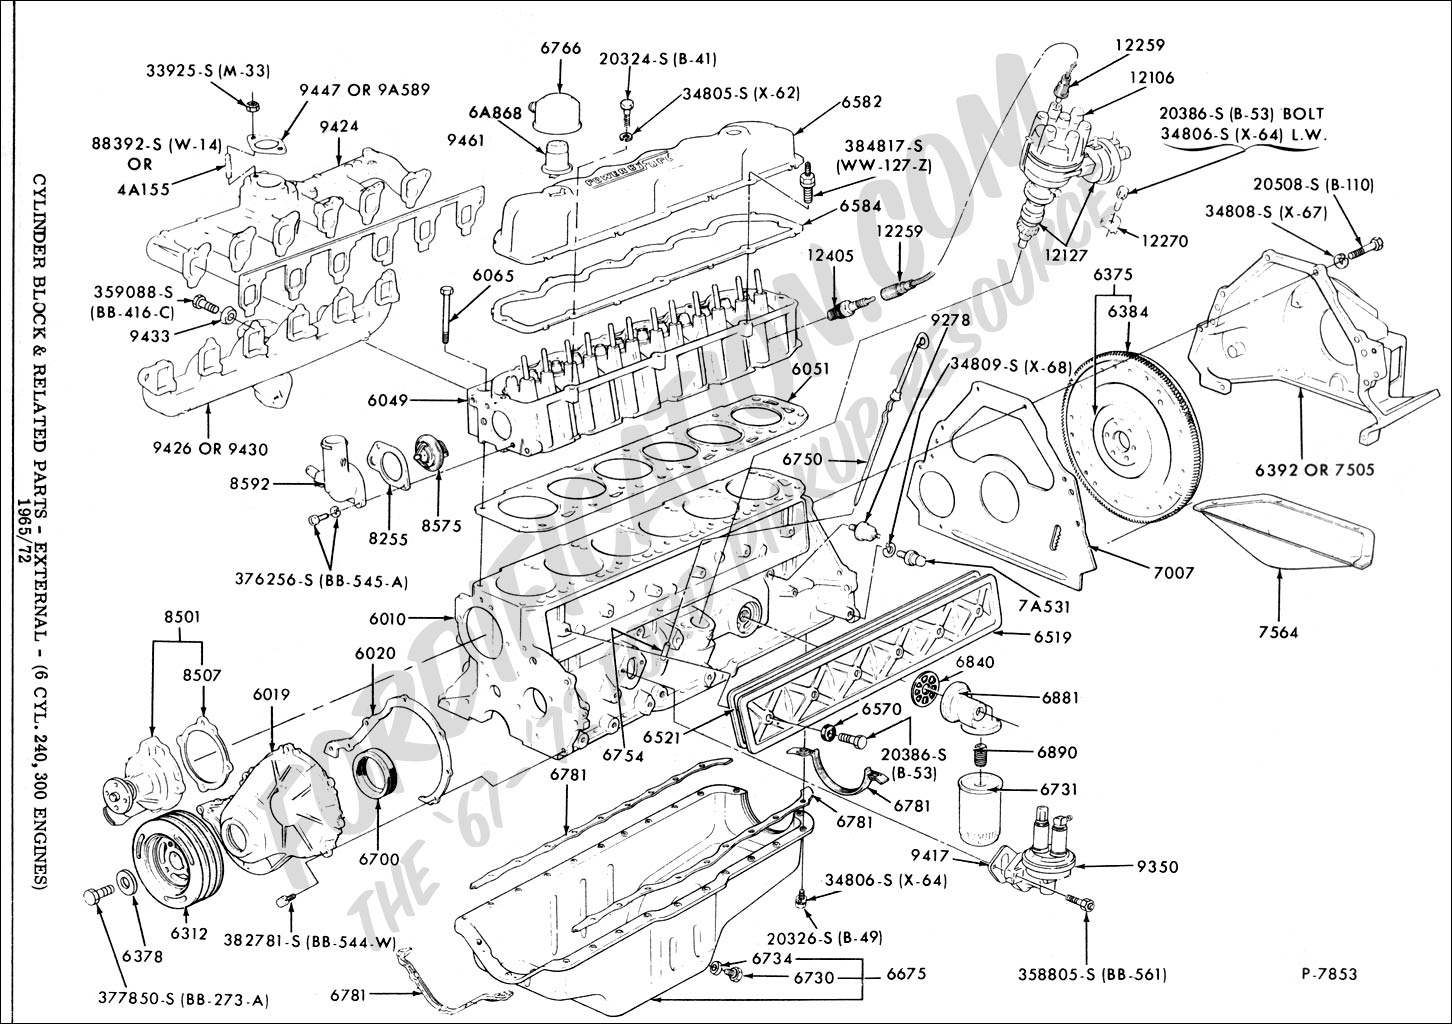 Ford Truck Technical Drawings and Schematics - Section E ...